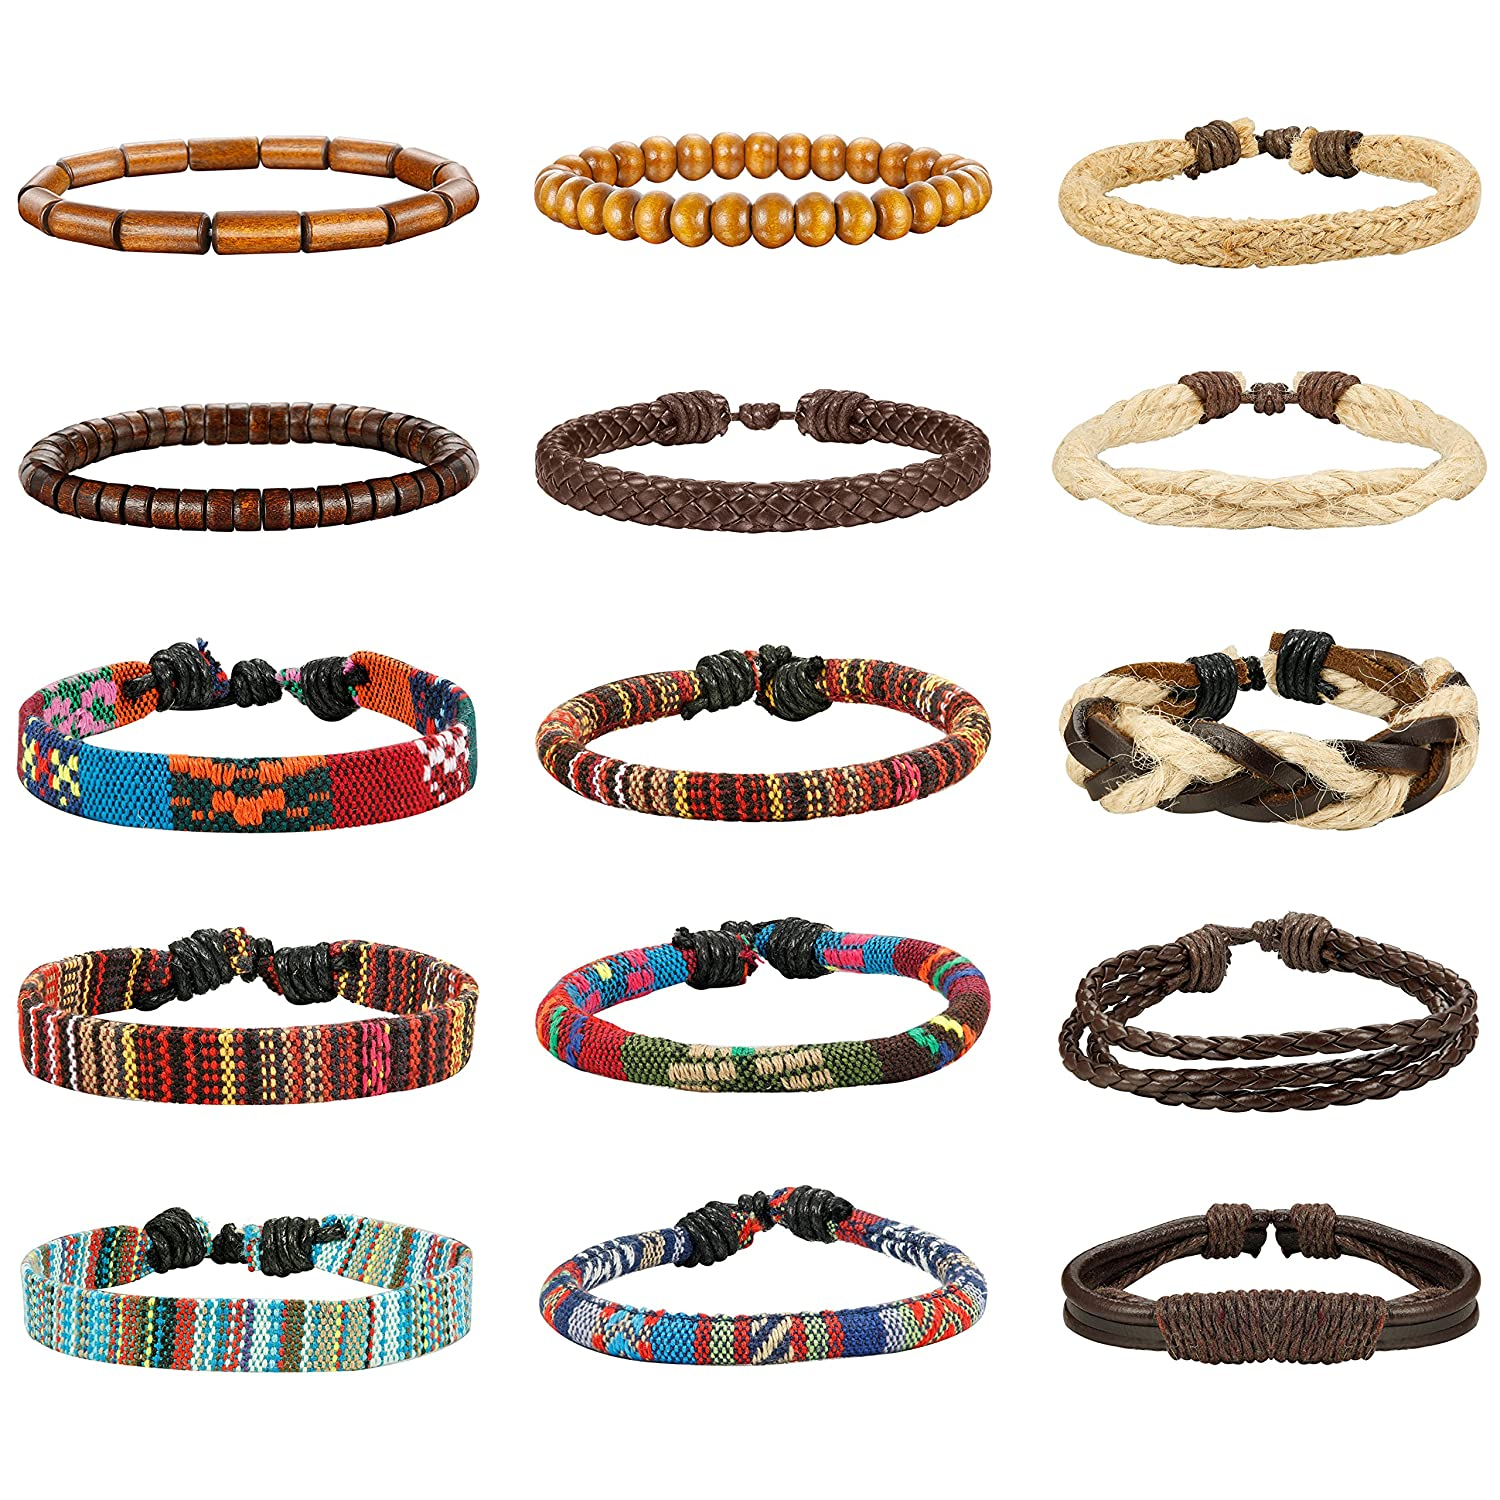 LOYALLOOK 15pcs Men Women Linen Hemp Cords Wood Beads Ethnic Tribal Bracelets Leather Wristbands DGB0001F